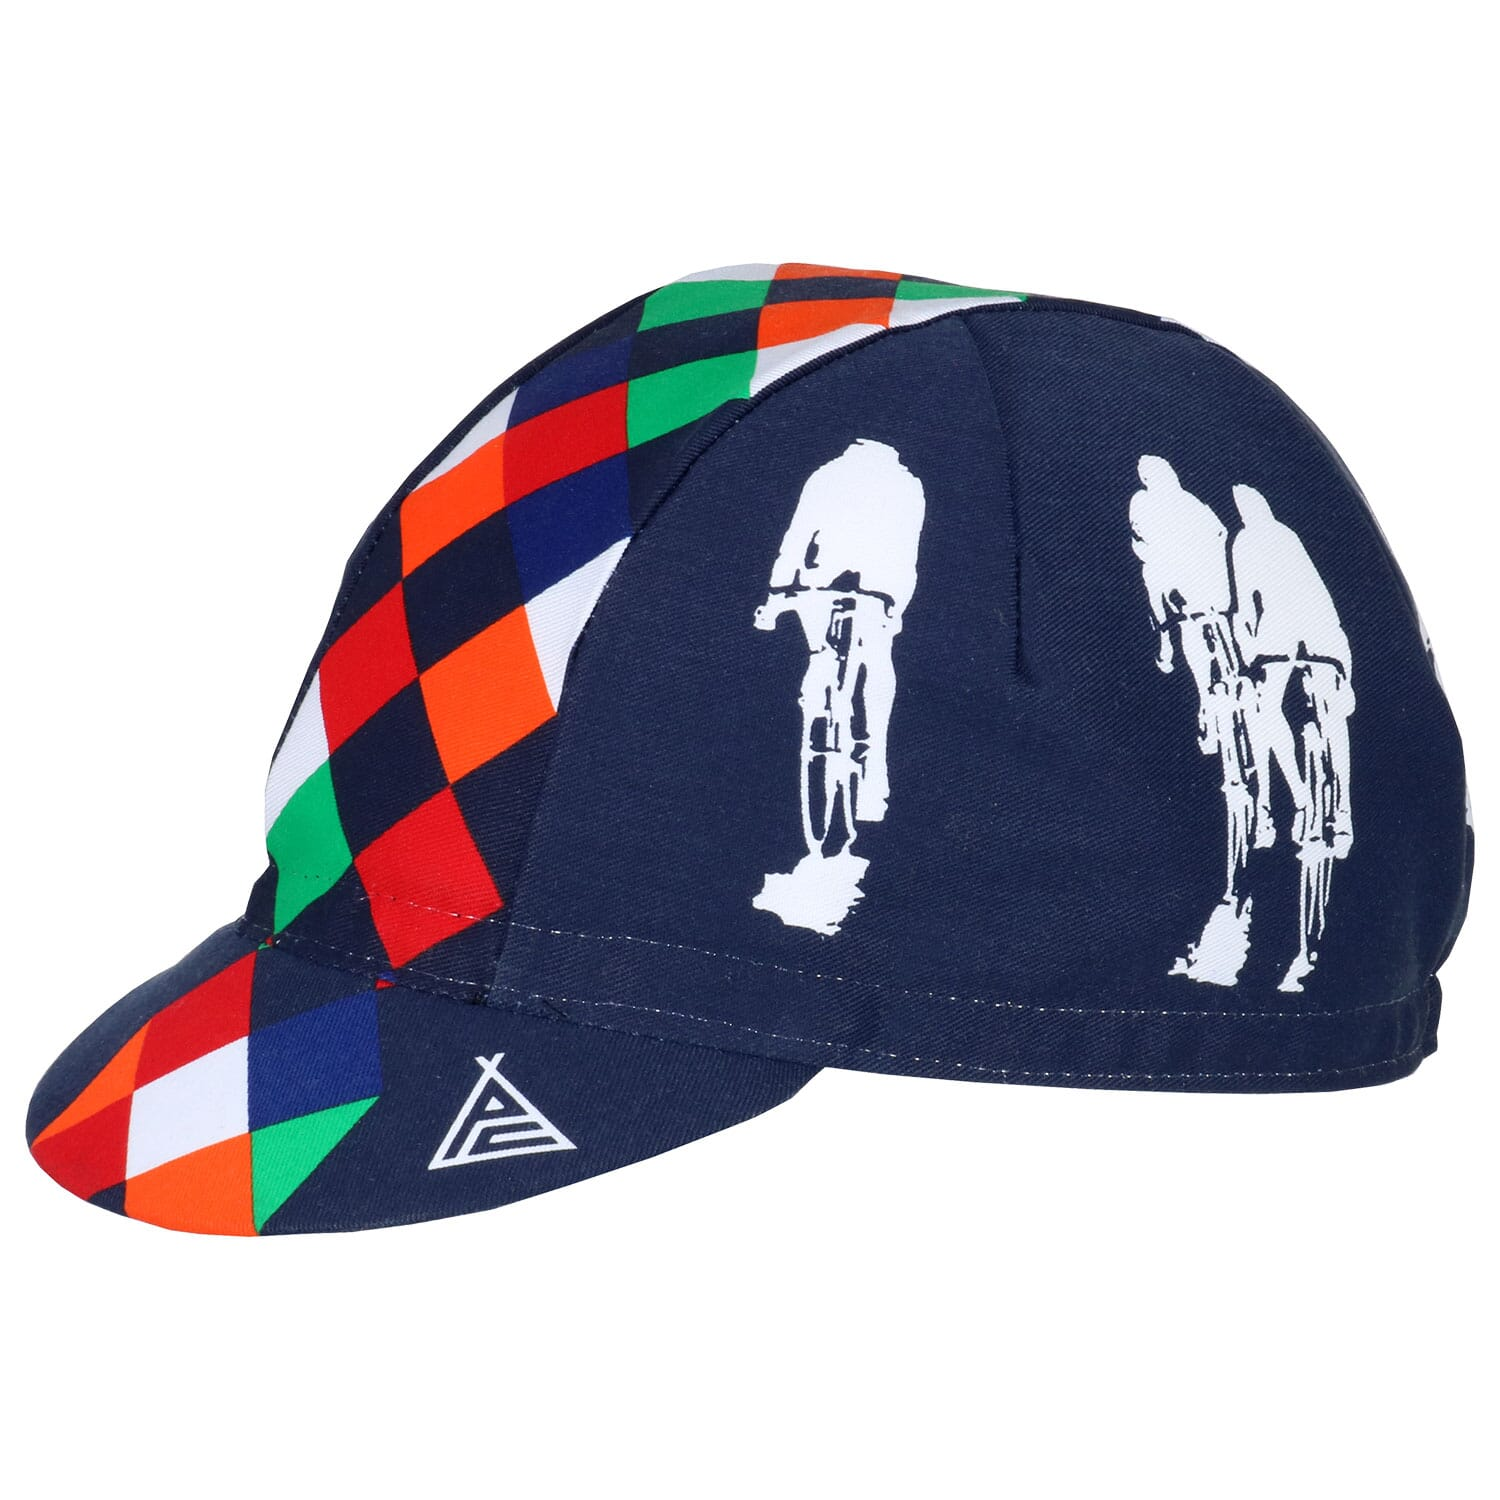 Prendas Chambéry 1989 Celebration Cycling Cap